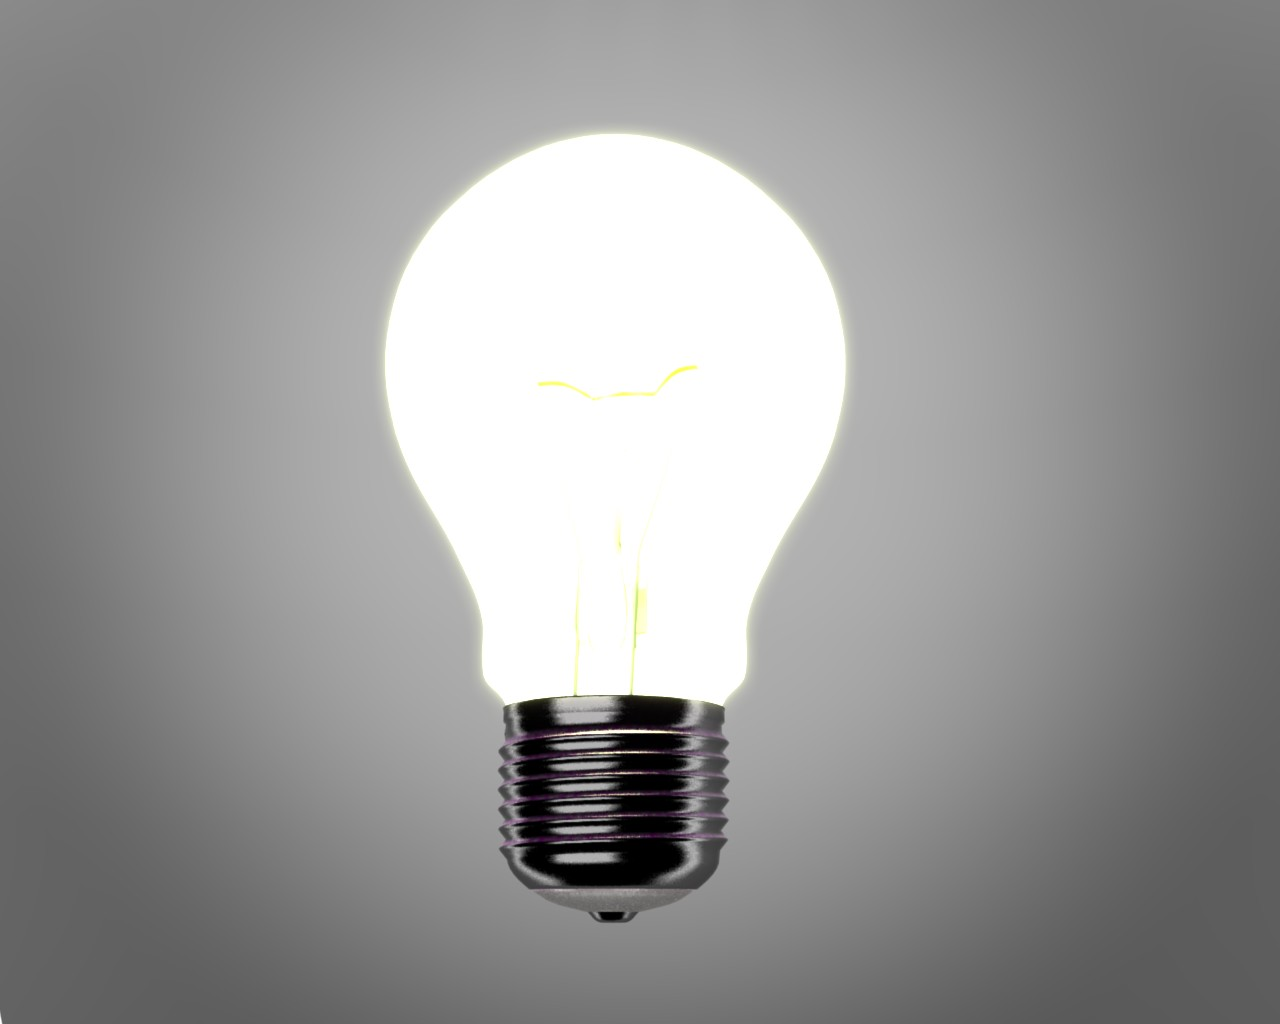 Lightbulb Lights Free Light Bulb Download Free Clip Art Free Clip Art On Clipart